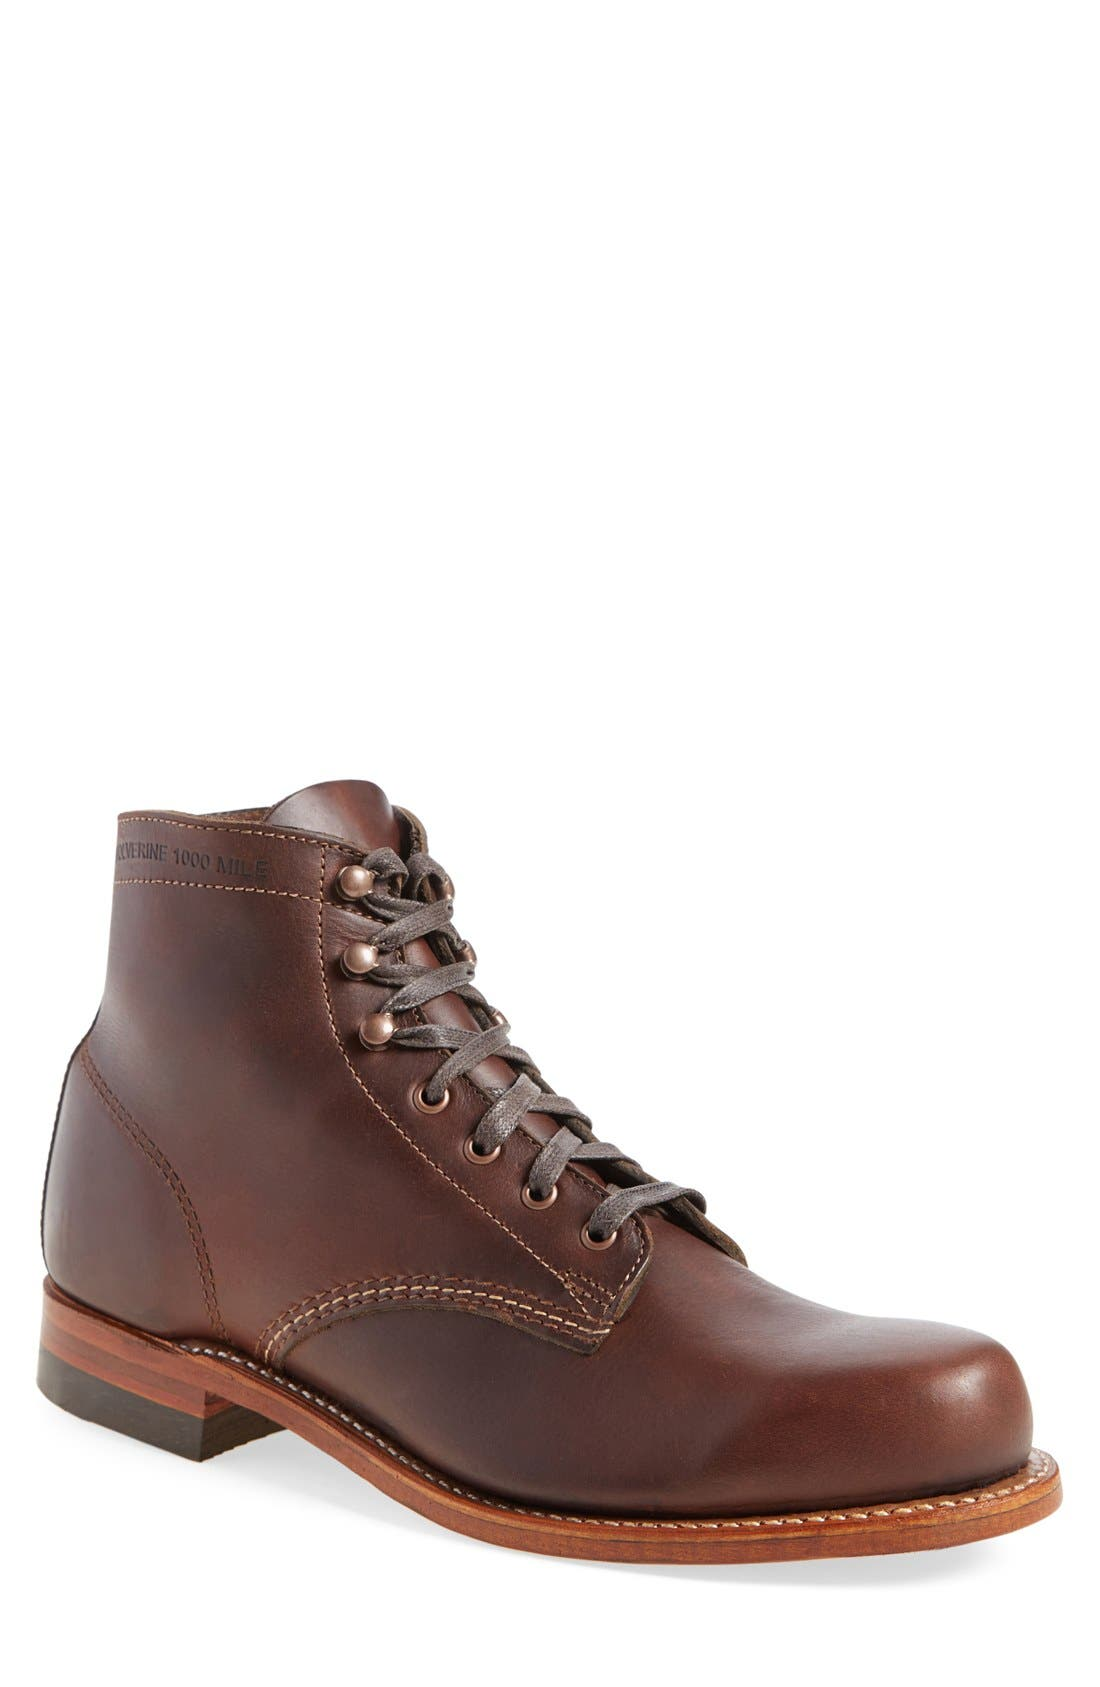 WOLVERINE '1000 Mile' Plain Toe Boot in Brown